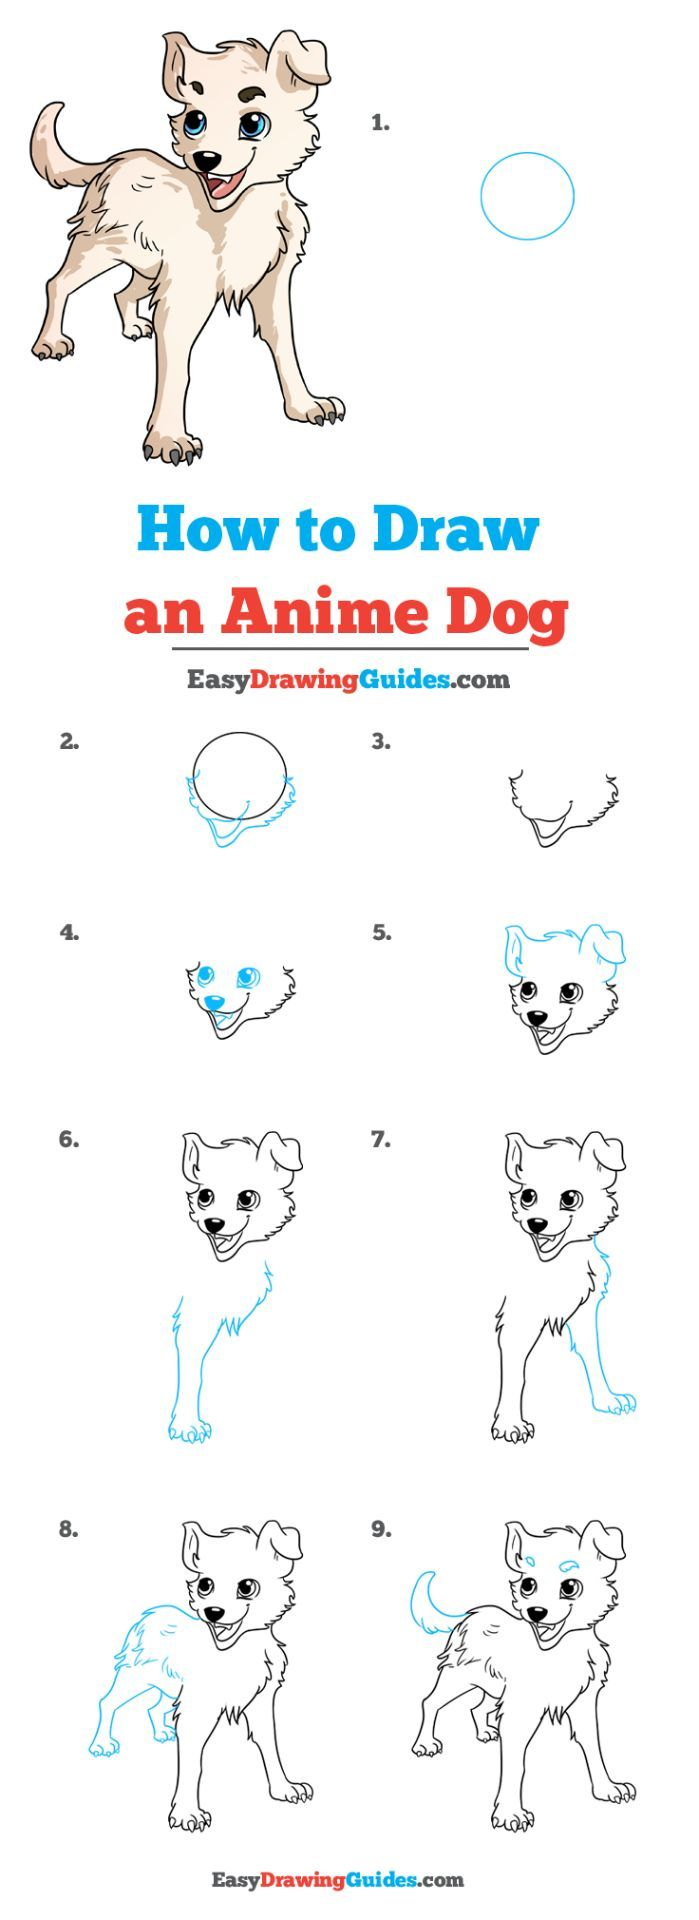 How To Draw An Anime Dog Really Easy Drawing Tutorial In 2020 Drawing Tutorial Easy Easy Drawings Drawing Tutorials For Kids